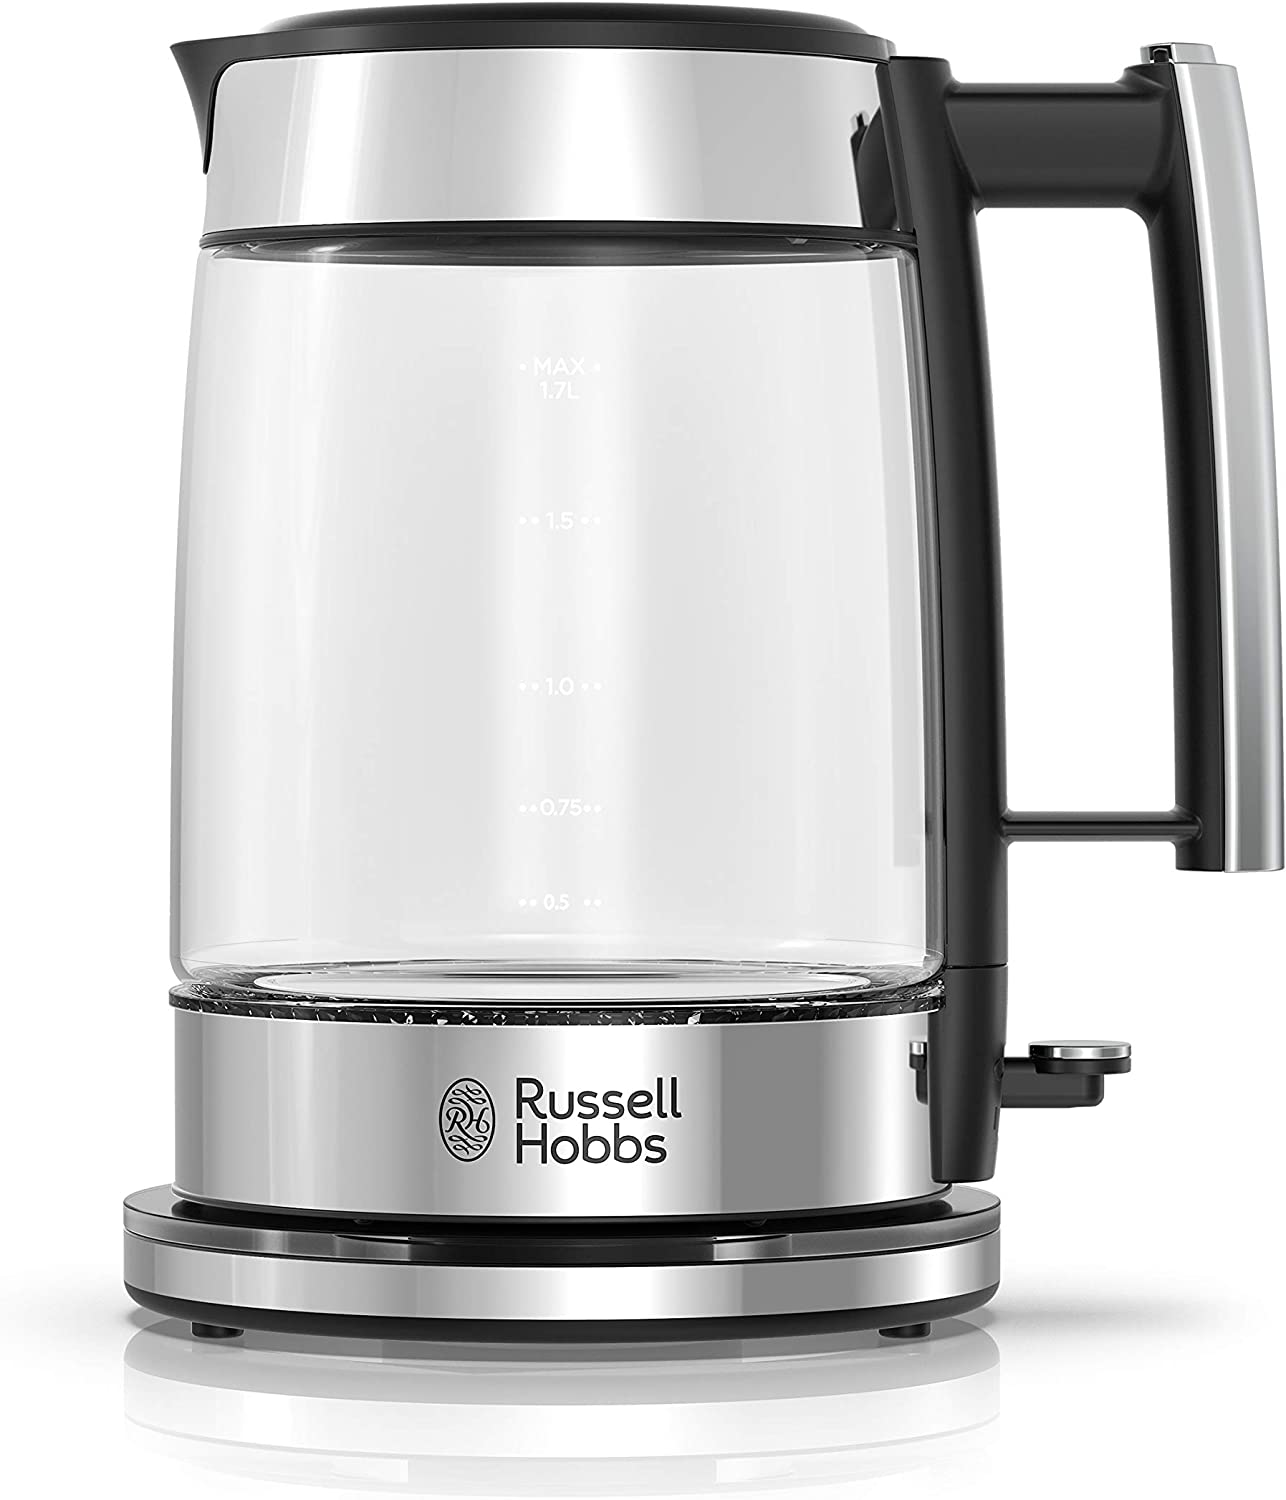 Russell Hobbs Premium Luxury Inspire 4 Slice Toaster and Kettle 1.7 LTR Rapid...